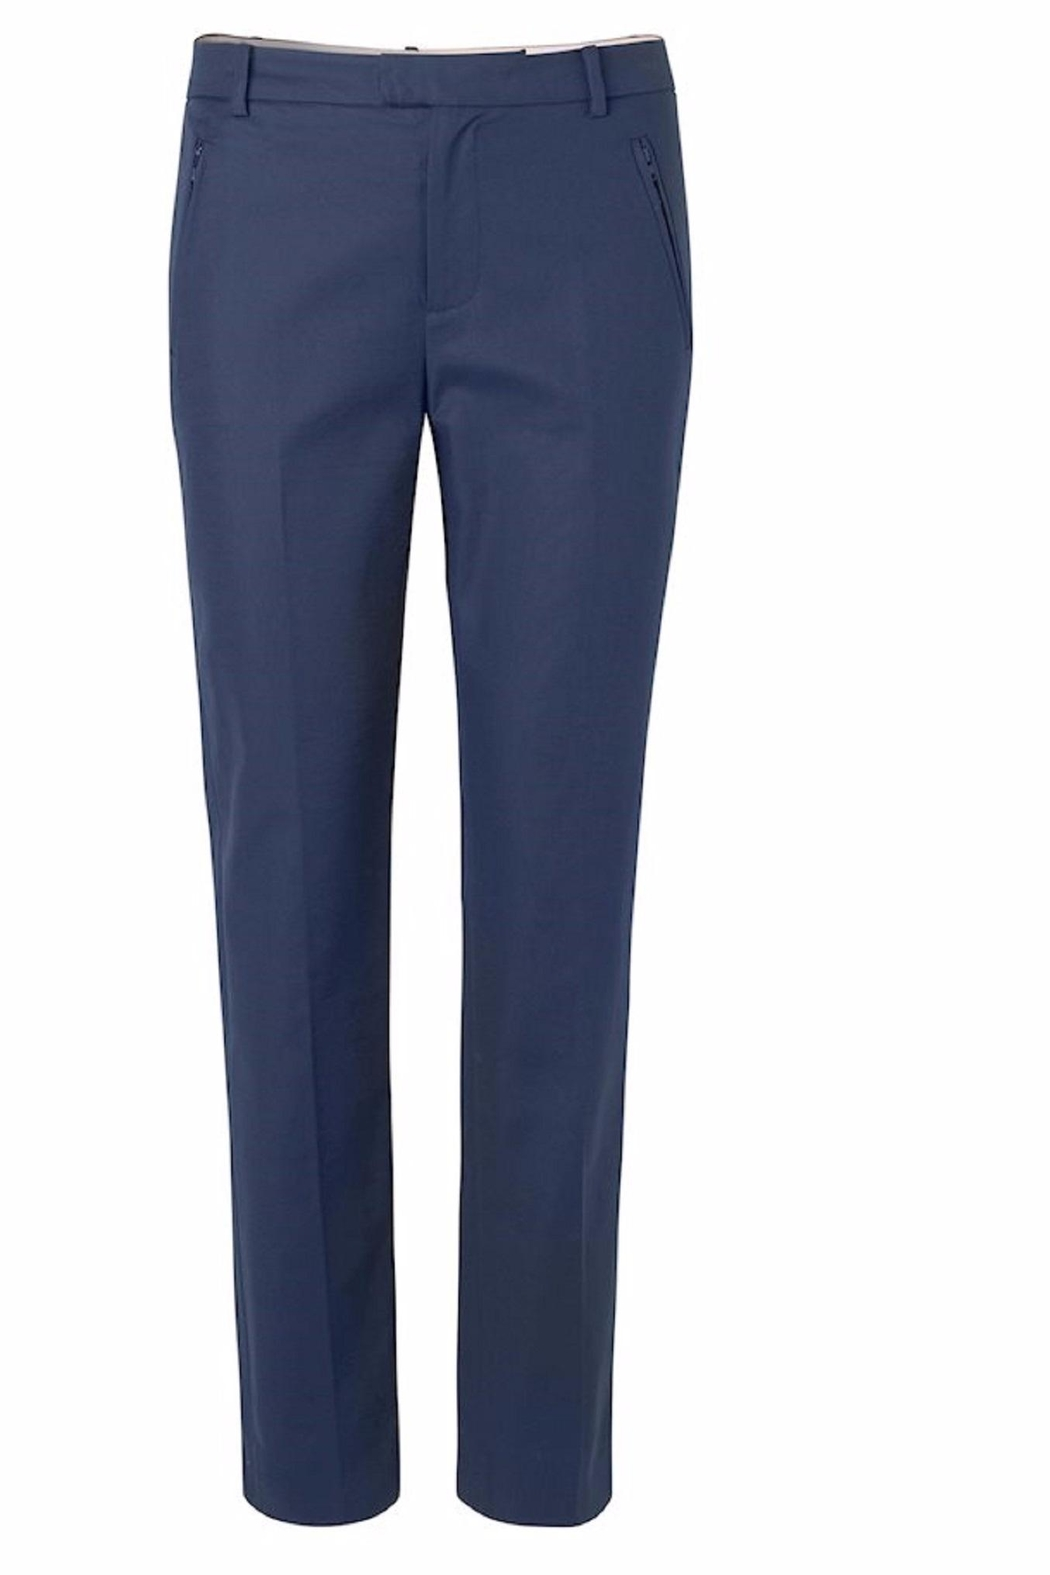 Noa Noa Beautiful Basic Trousers - Main Image